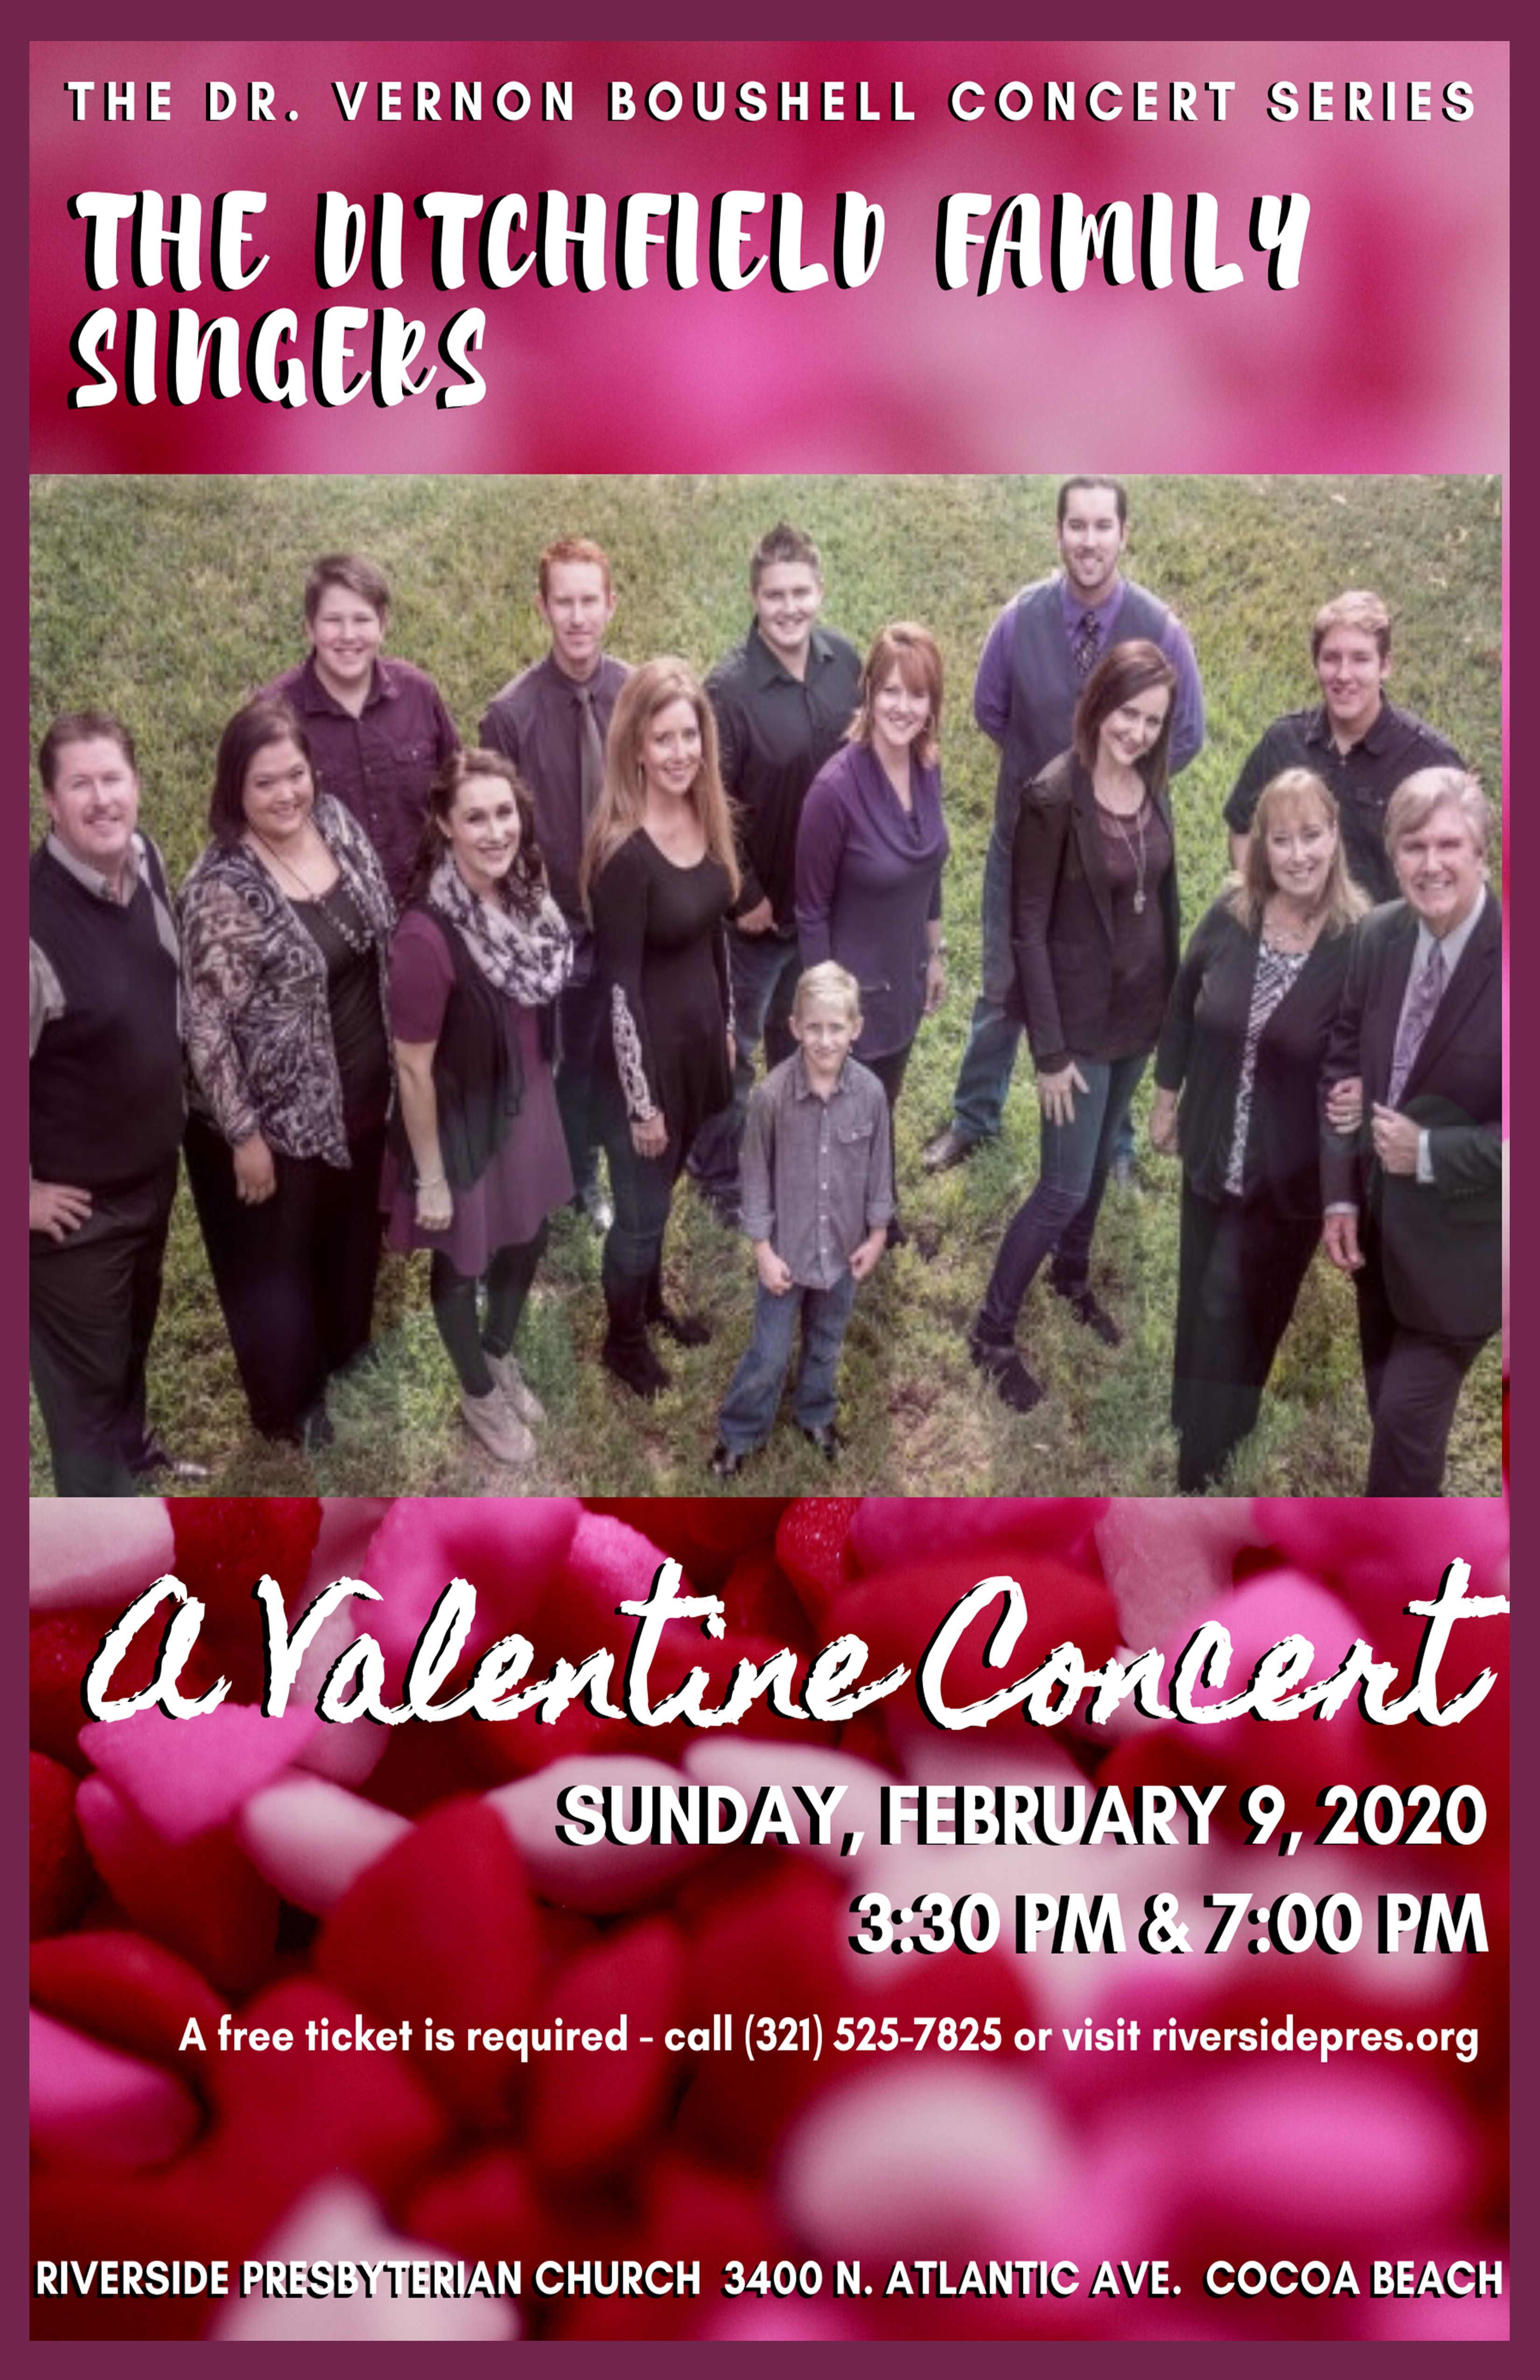 'A Valentine Concert' by the Ditchfield Family Singers